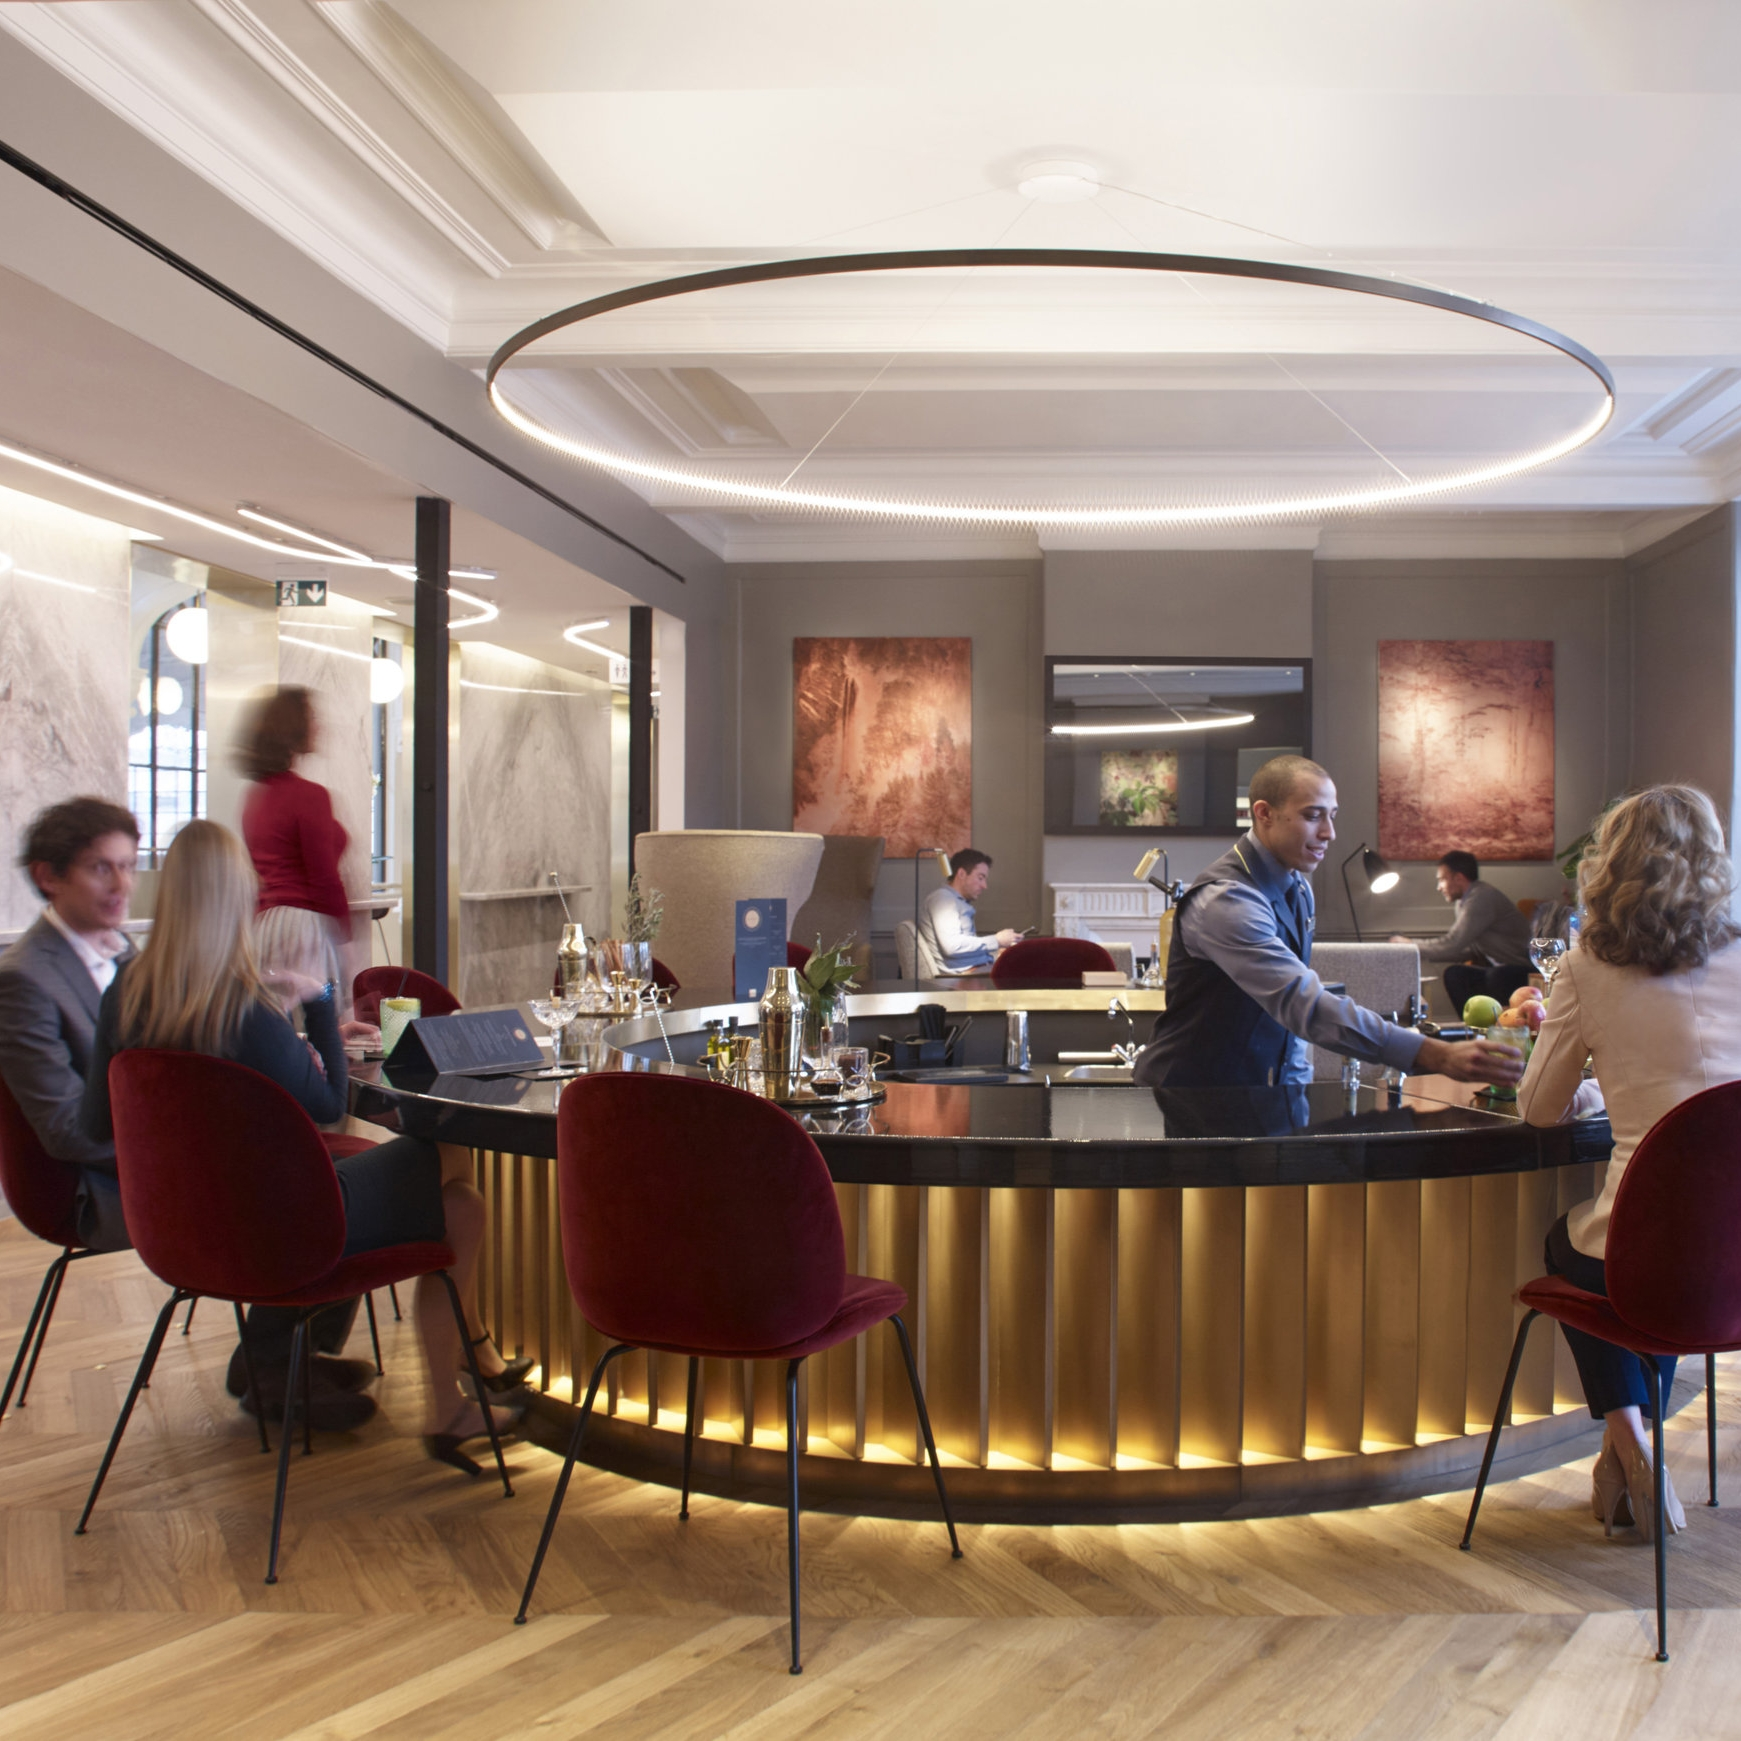 Eurostar, Paris   The subtle yet expressive FlowBar diffusers were chosen for the Eurostar Gare du Nord sophisticated Business Premier Lounge.   Read more about the project...